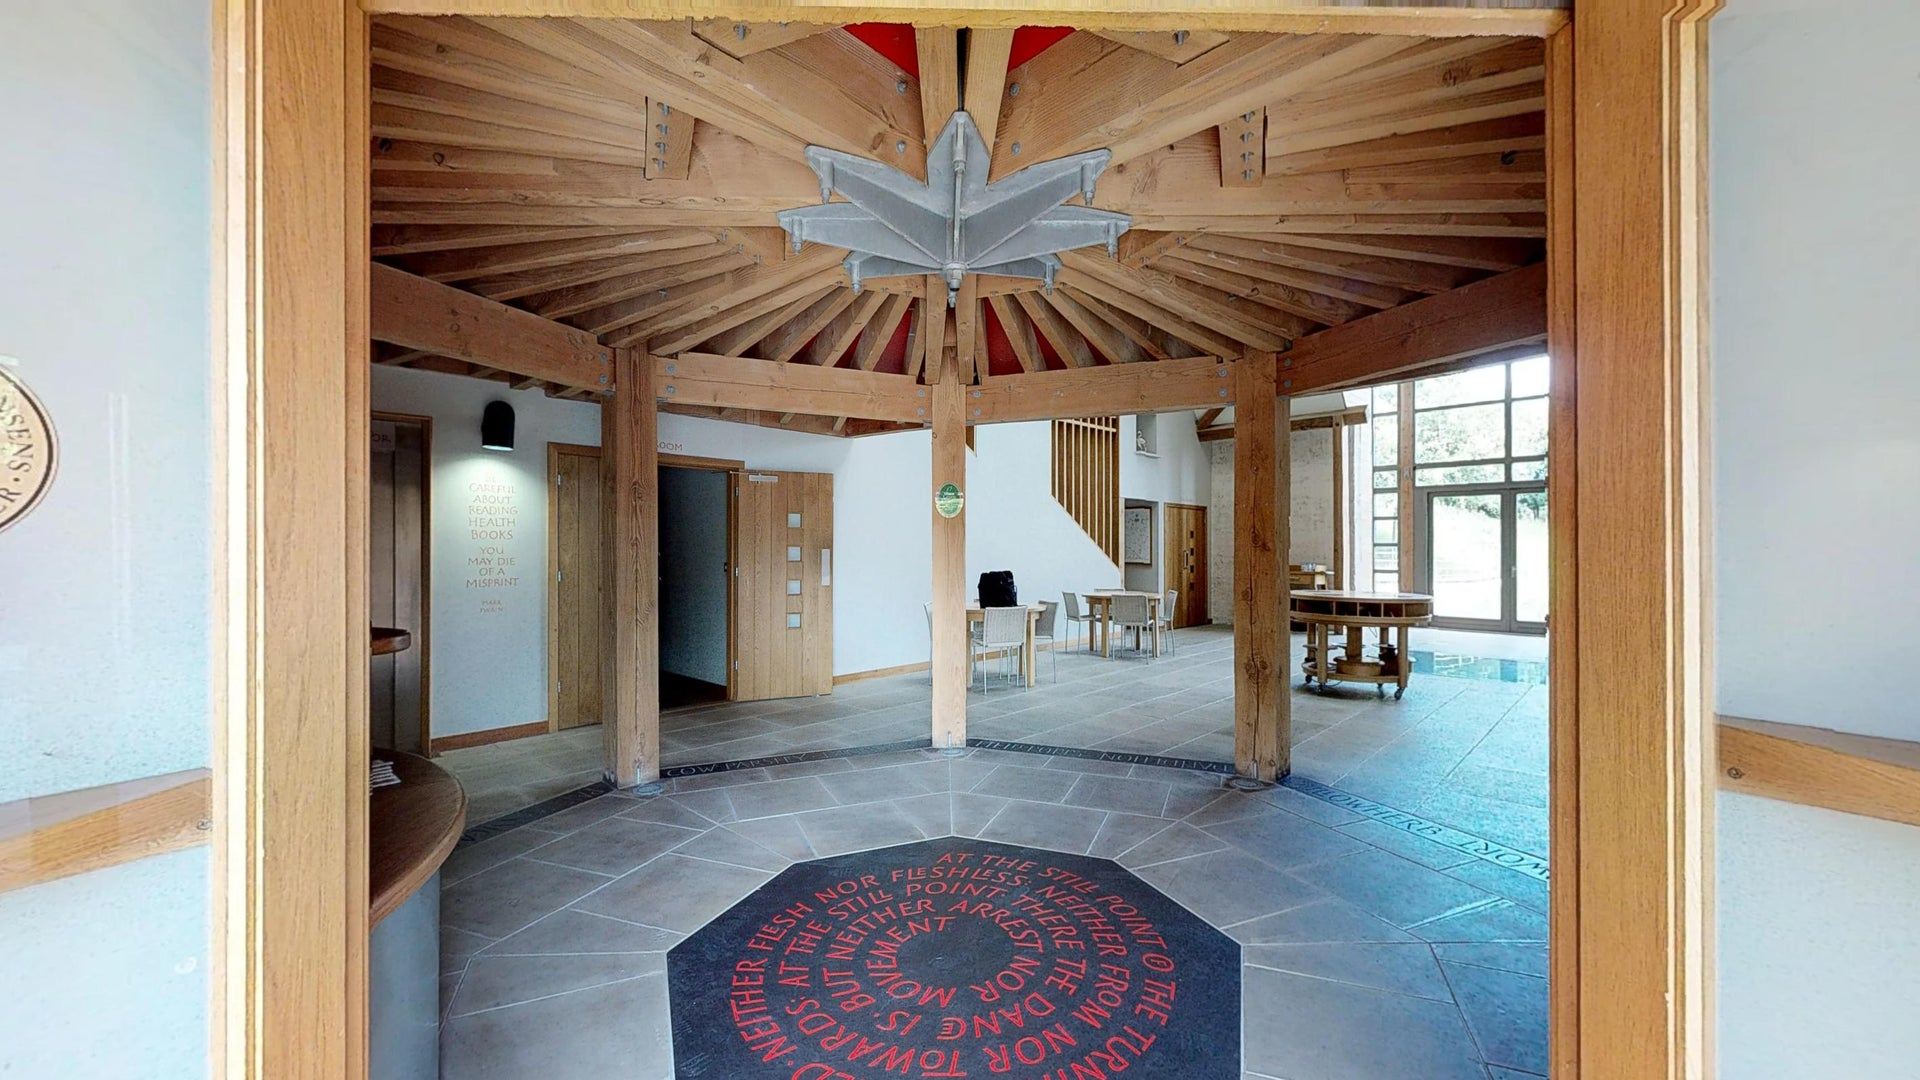 Sheepdrove Organic Farm Foyer